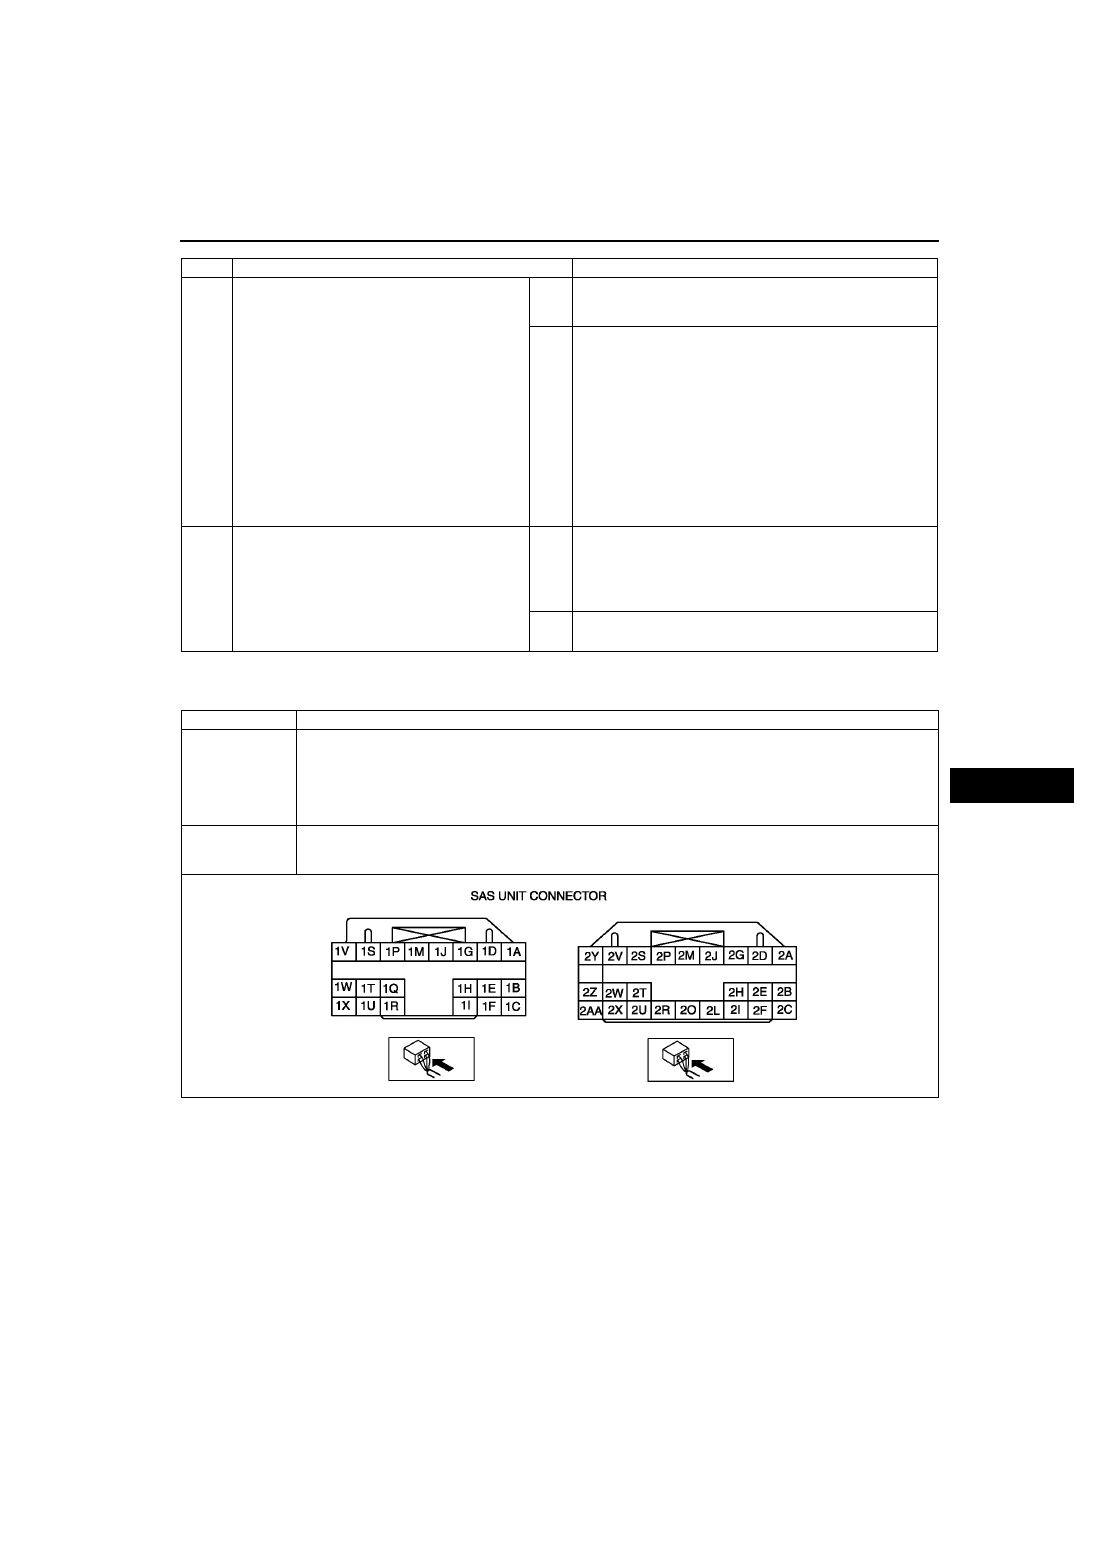 Mazda 3 Service Manual: Front Seat Back Component Vehicles Without Power Seat System RemovalInstallation